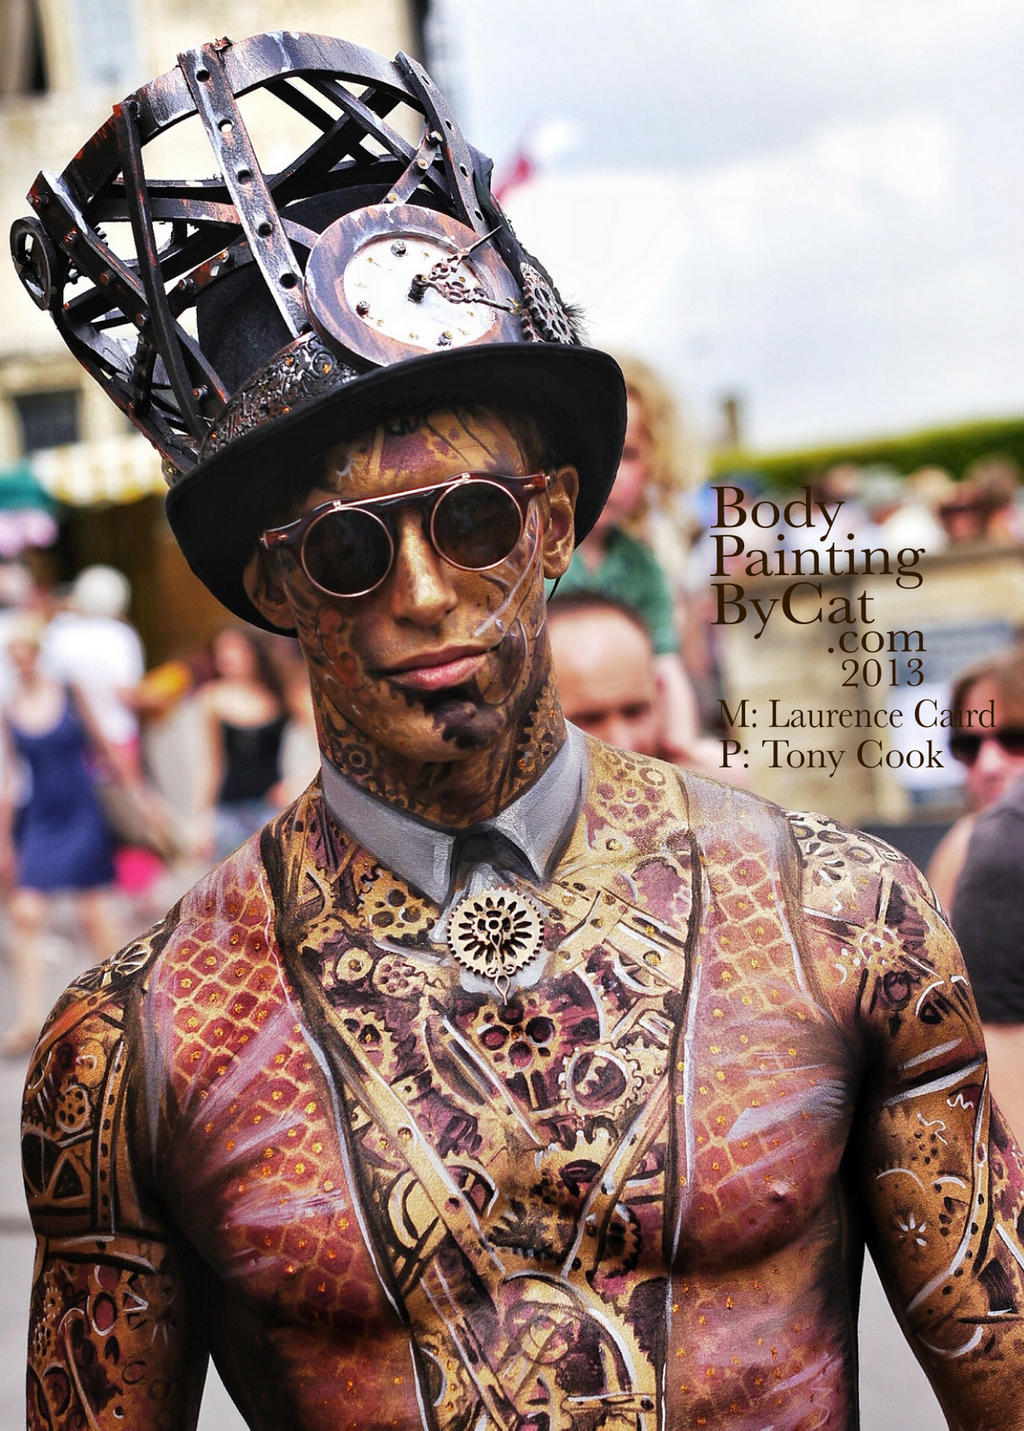 Winner Art Couture Painswick Bodypaint Steam punk by Bodypaintingbycatdot